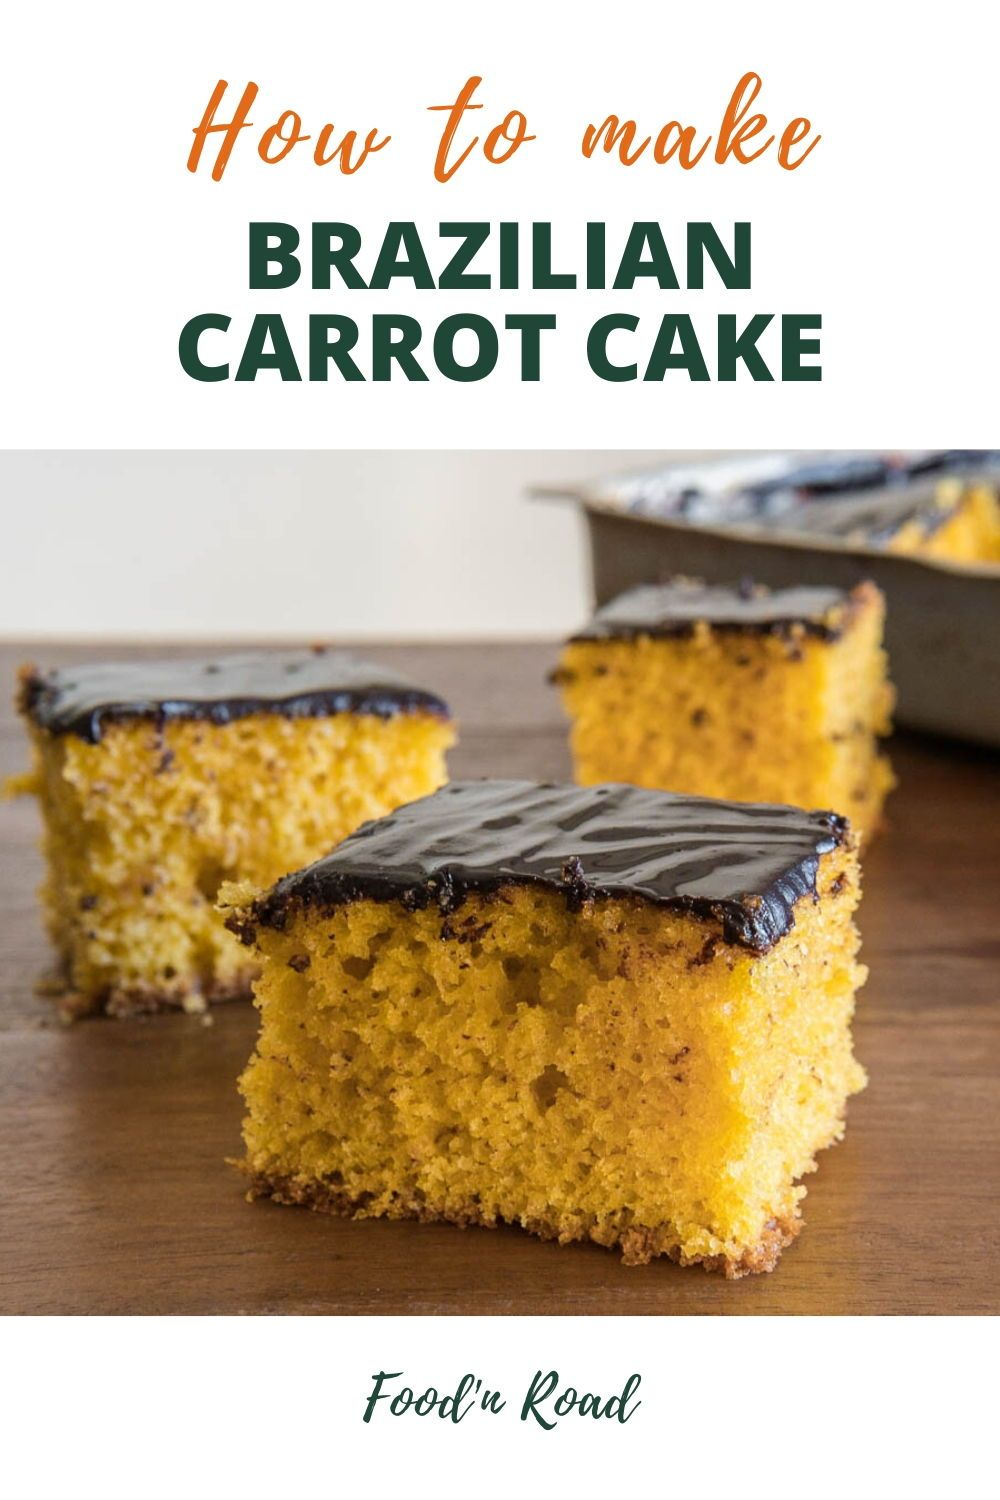 Brazilian carrot cake with chocolate topping traditional